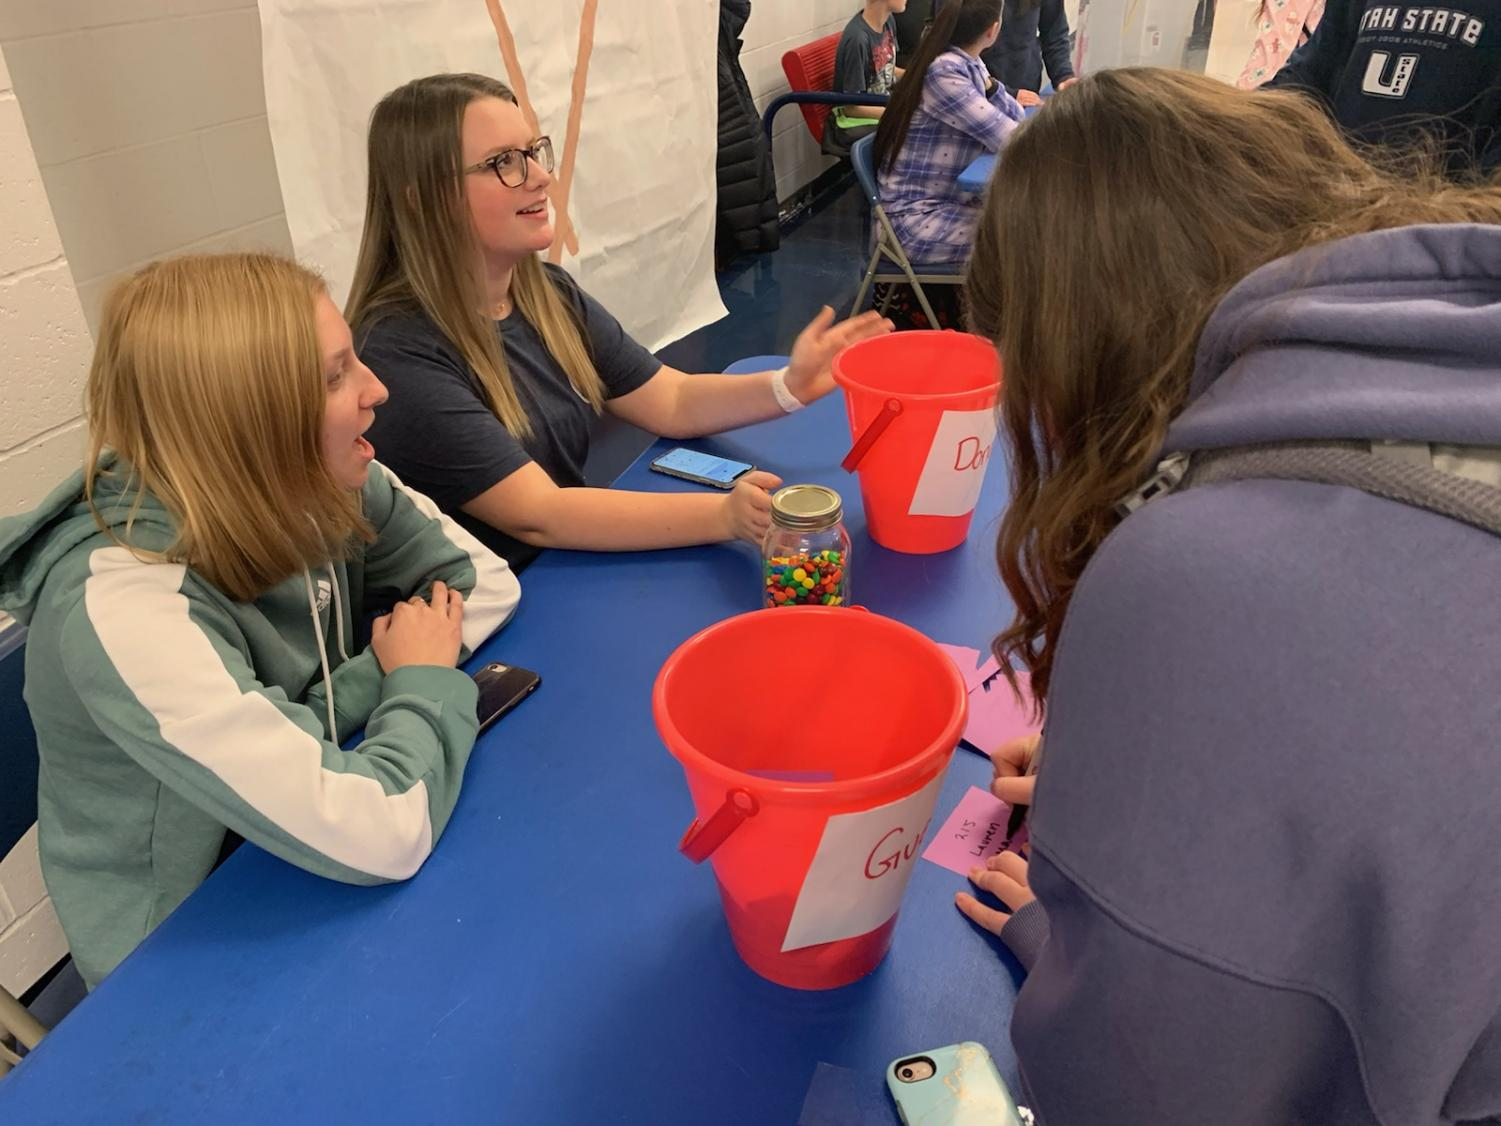 ASC members Rachel Geisler and Aubrey Kress              run a booth for people to donate money for coaches vs.cancer and guess the number of M&M's in a jar for a prize.